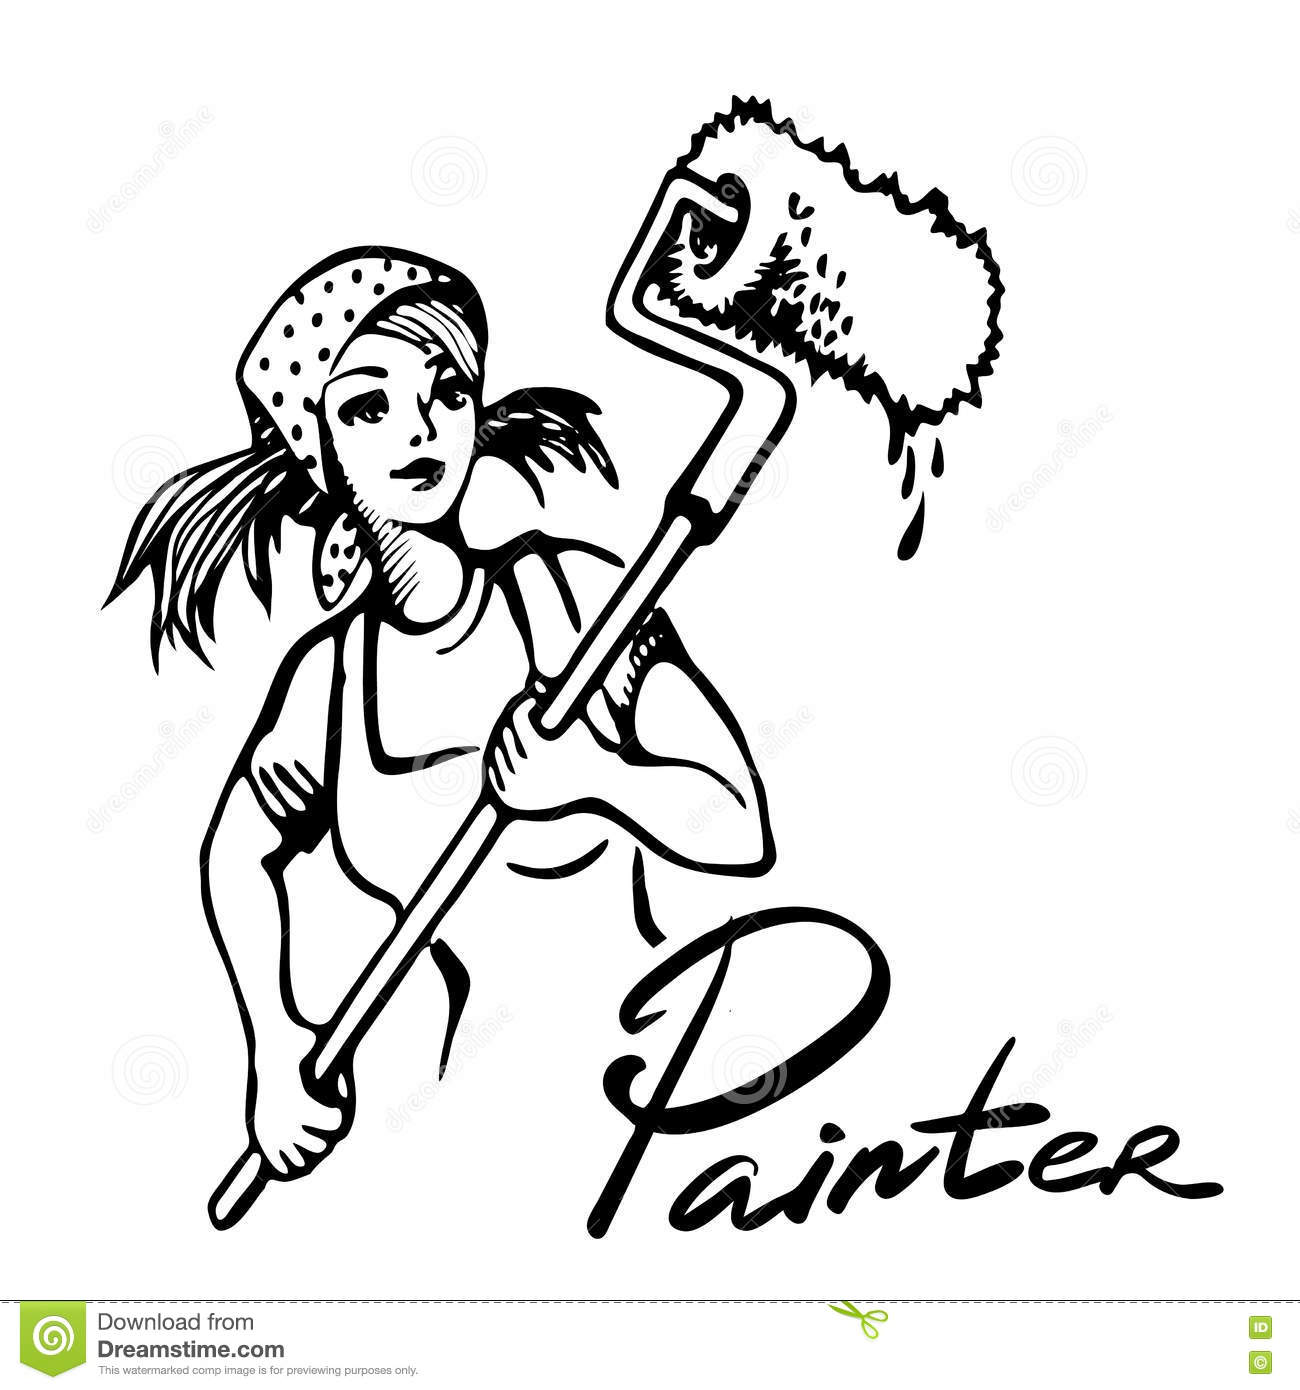 Wallpapering clipart 4 » Clipart Station.